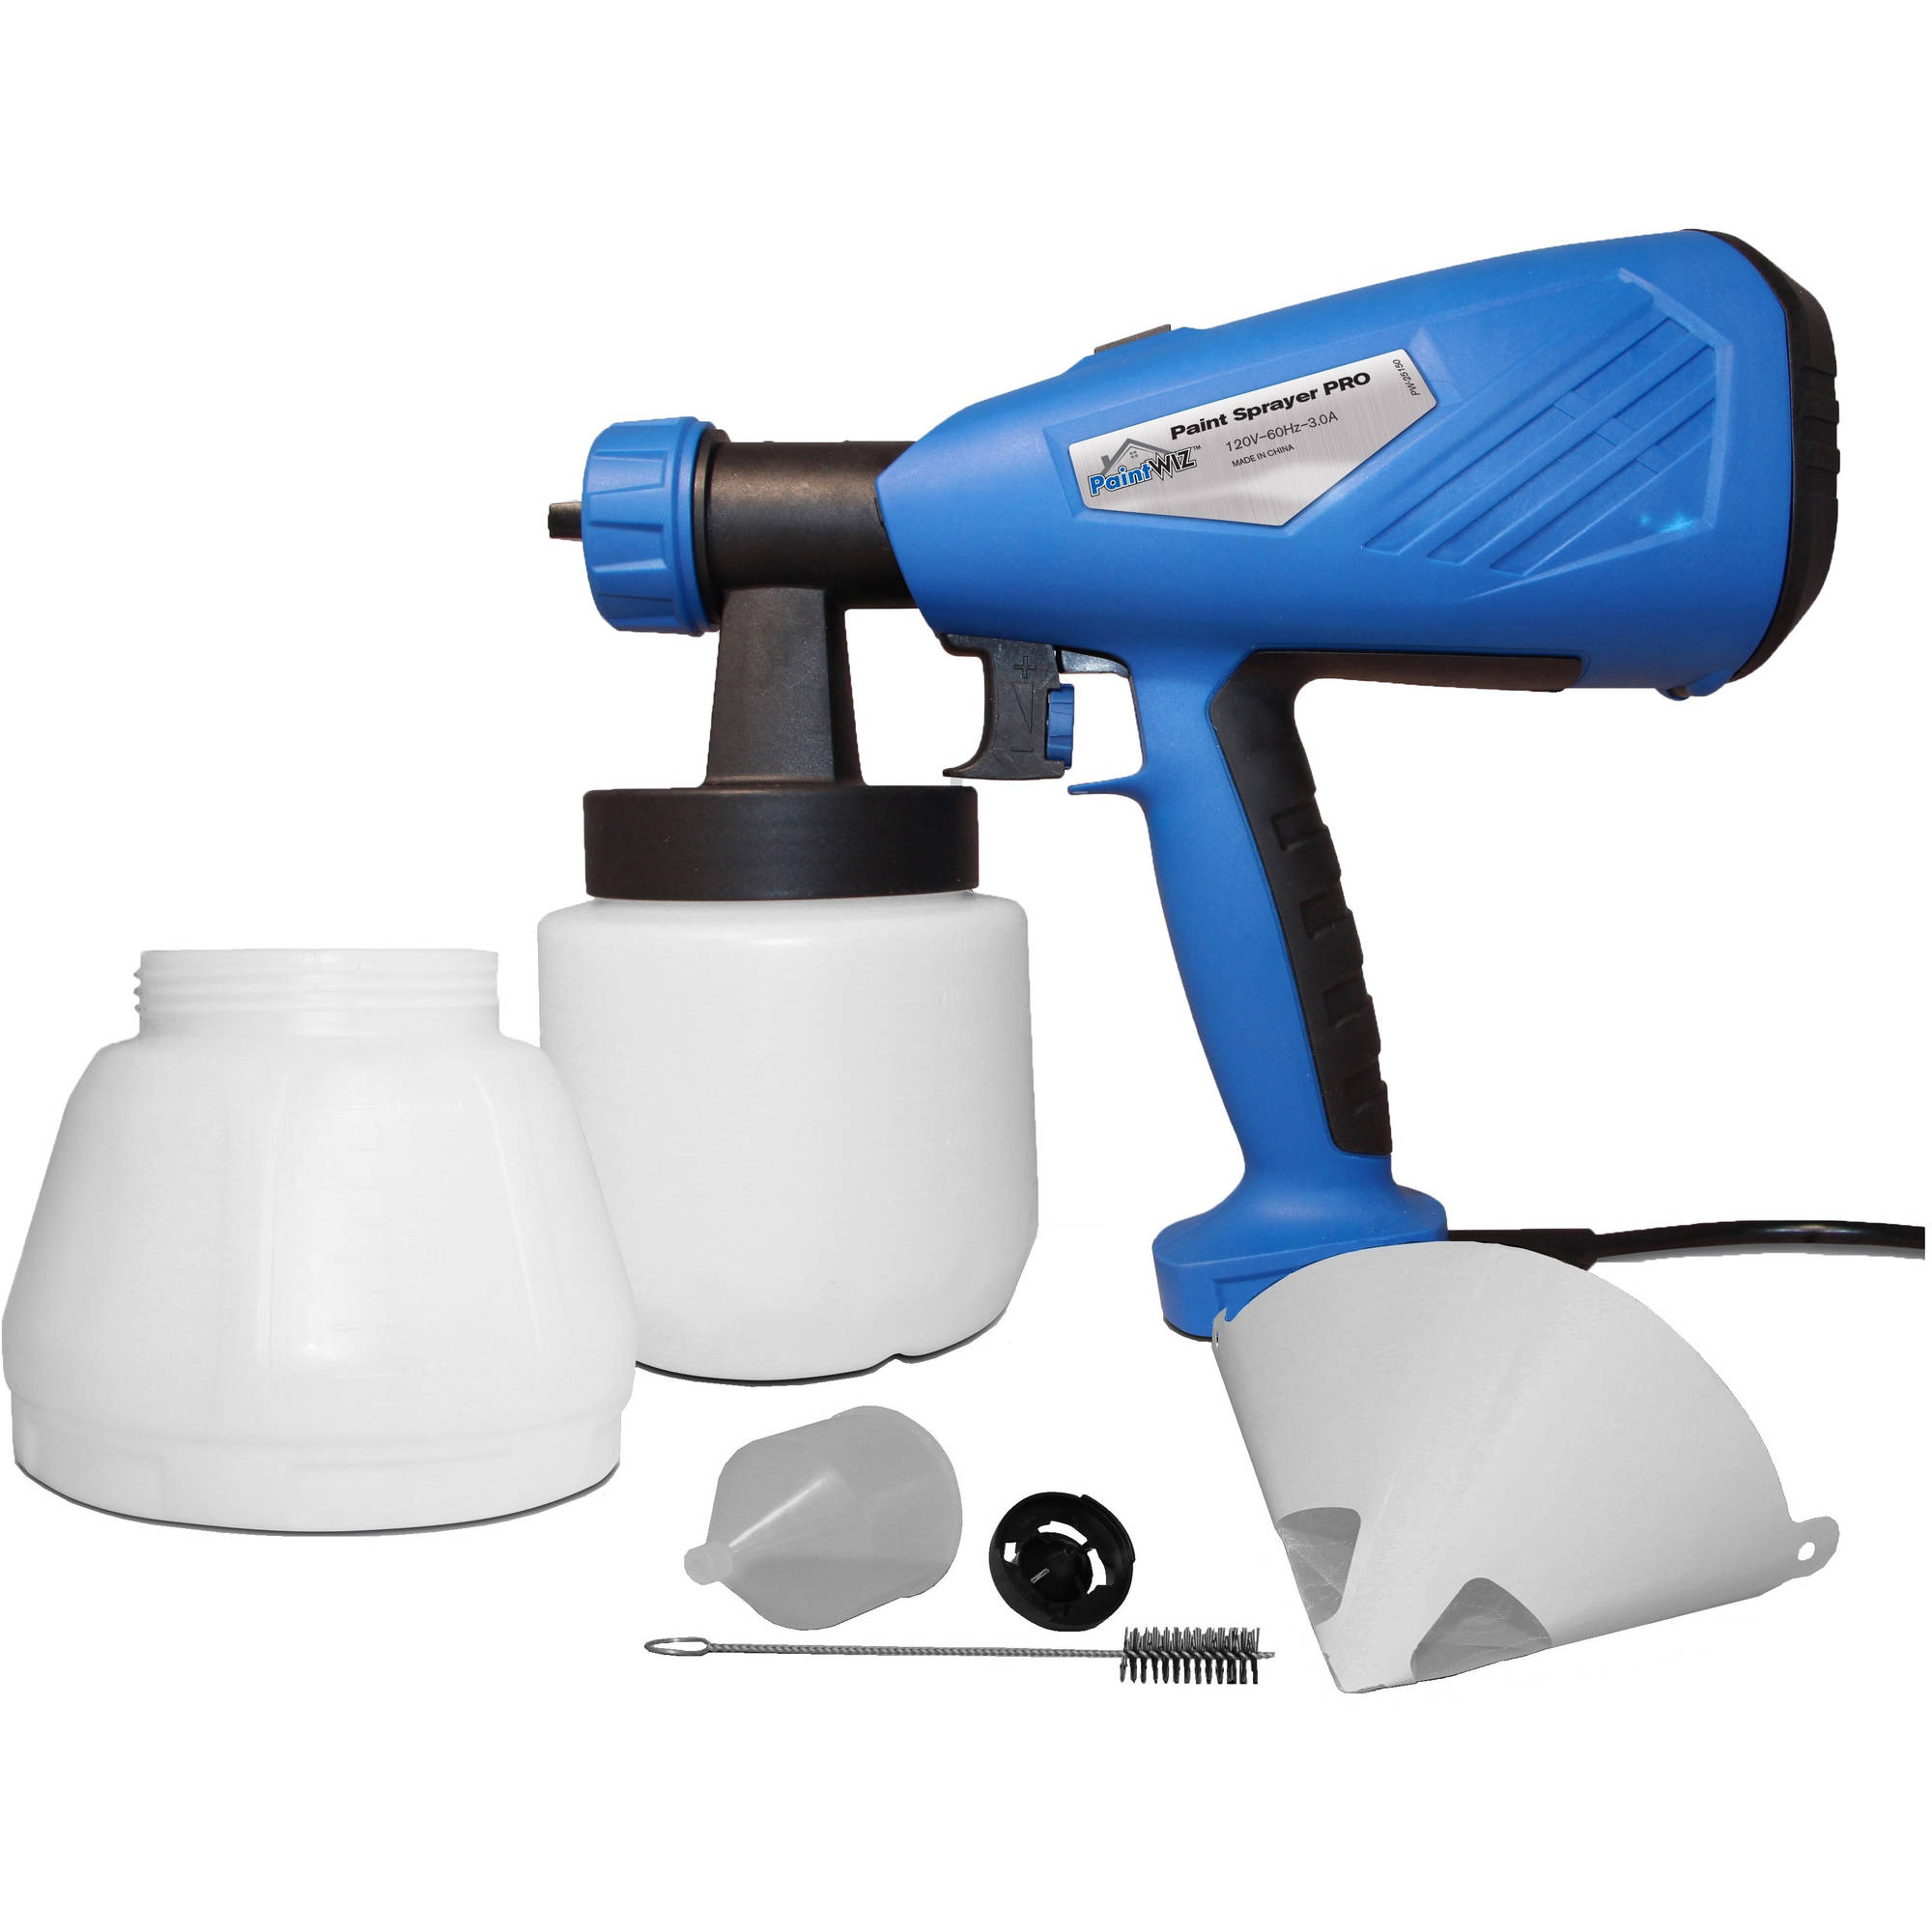 PaintWIZ HandHeld Paint Sprayer PRO, PW25150 HVLP Spray Gun Spray System